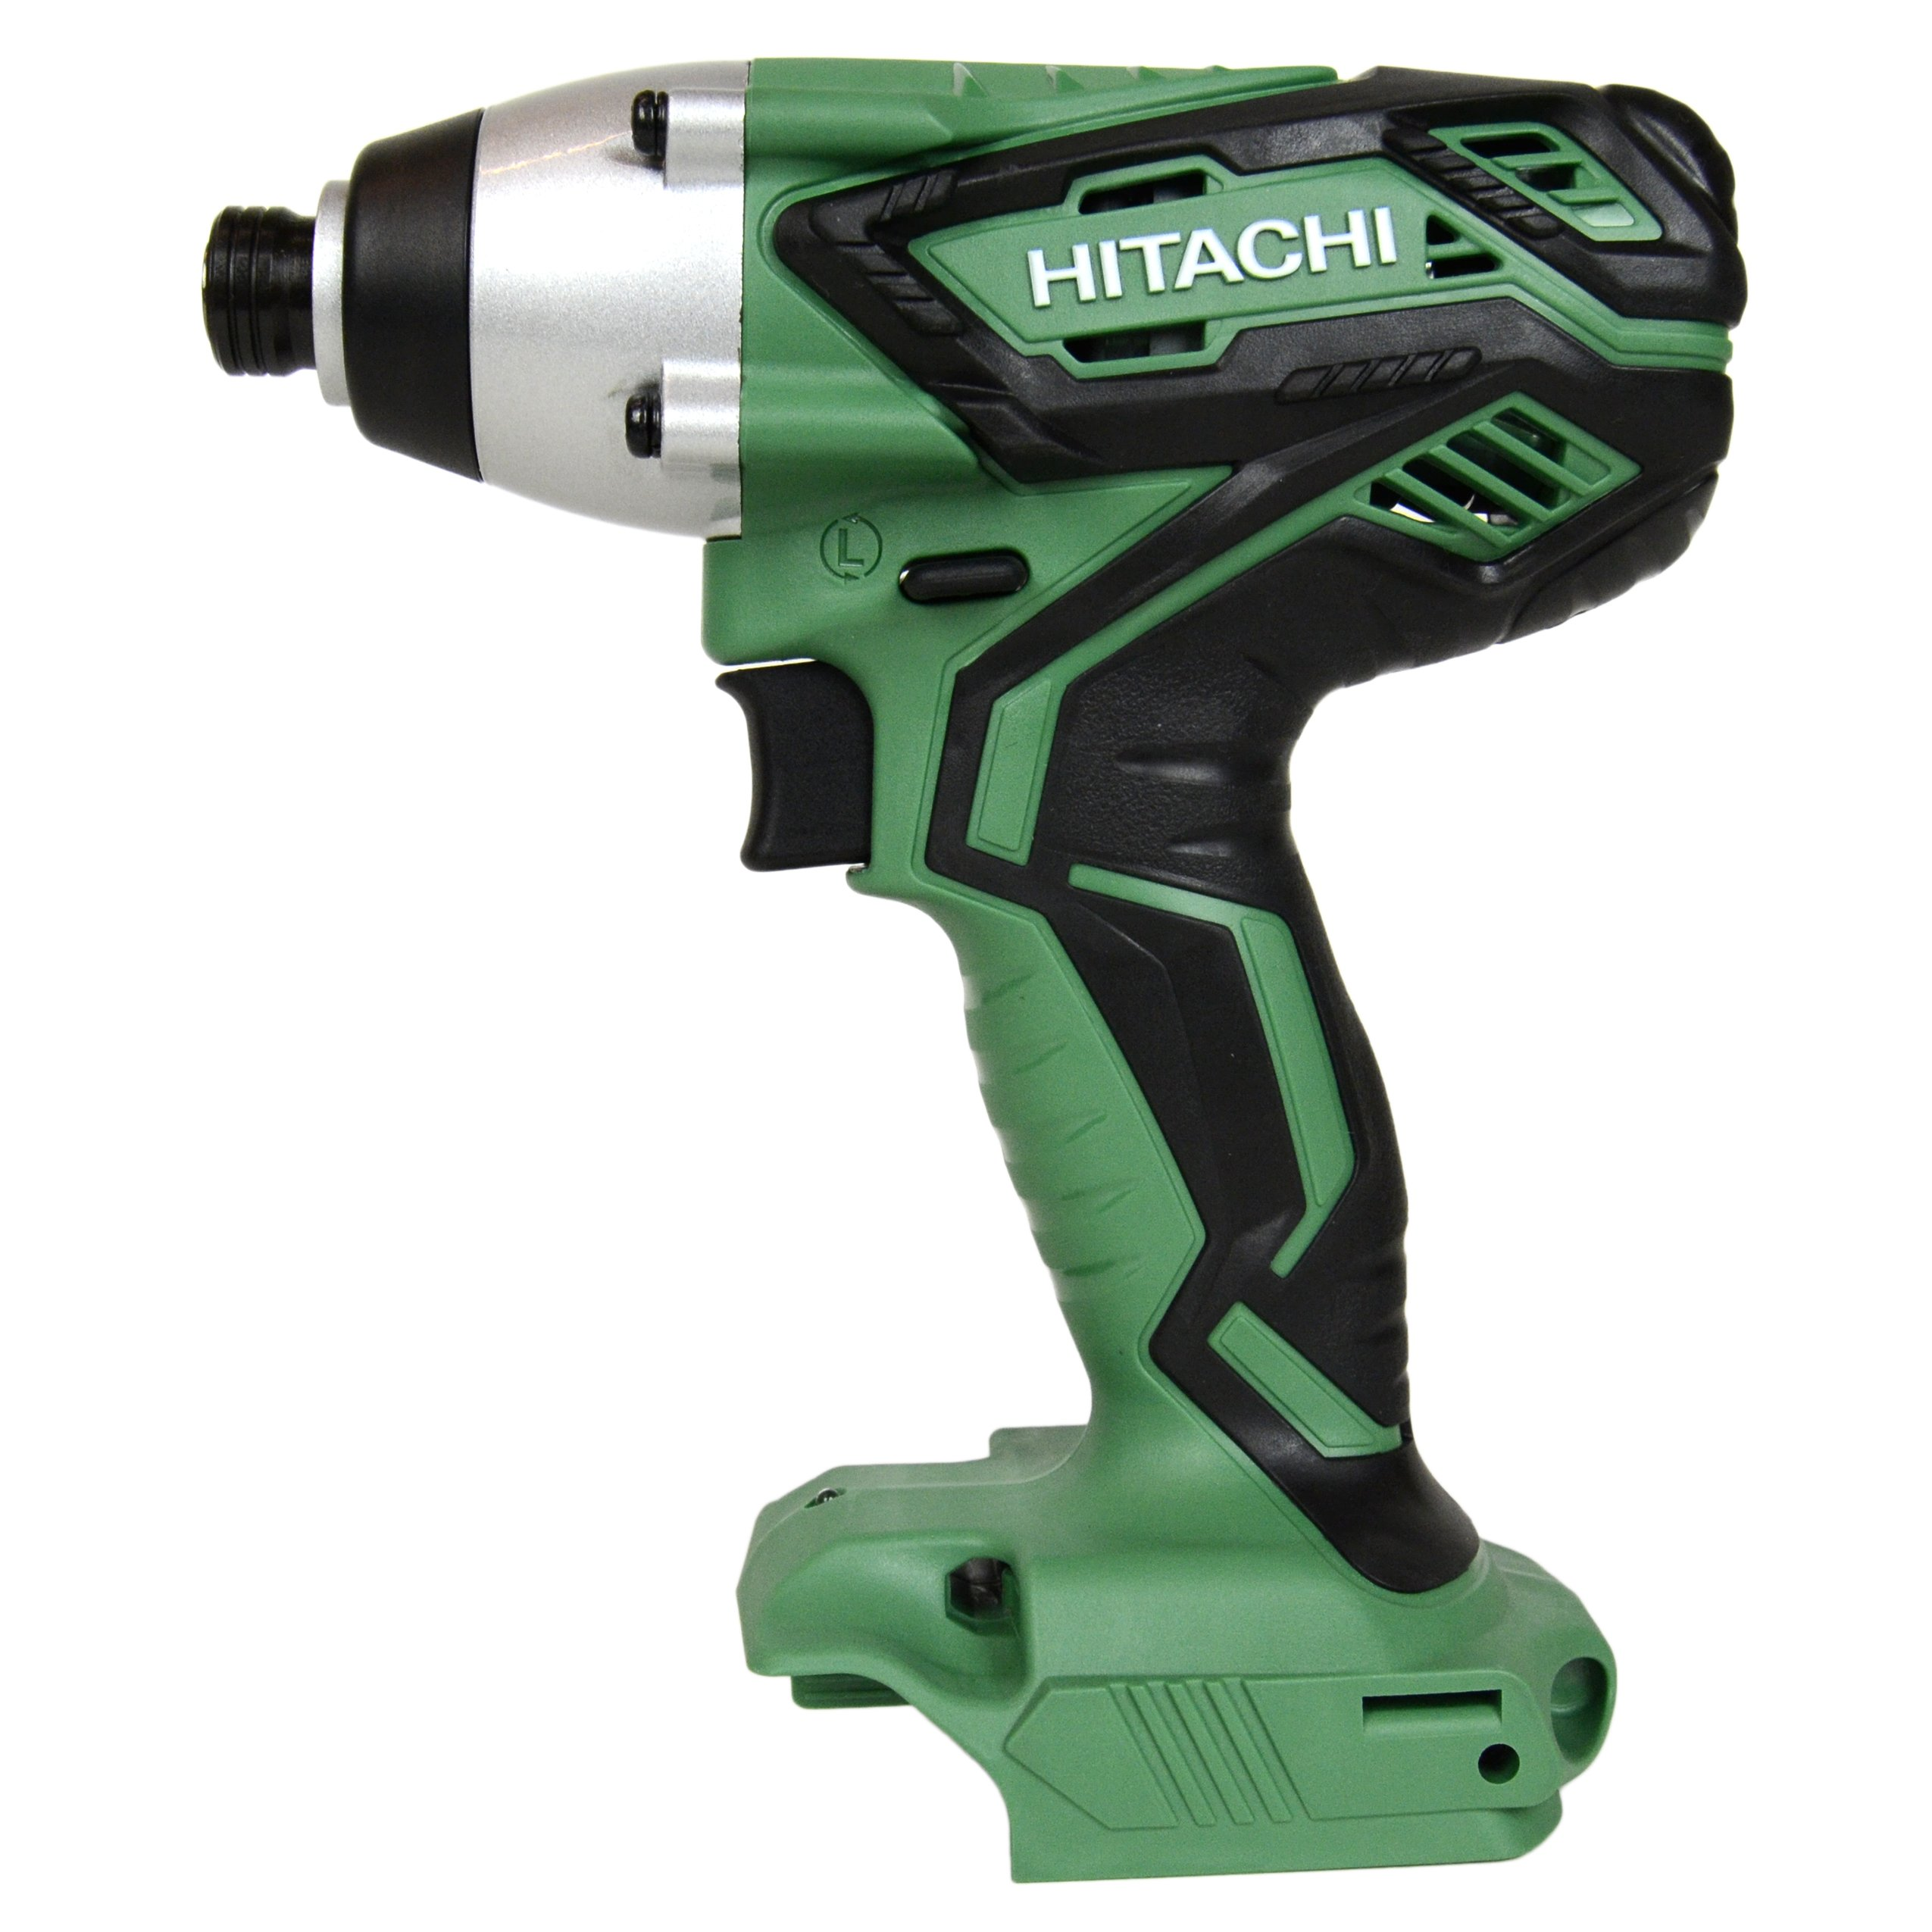 Hitachi WH18DGL Impact Driver 1/4 inch Hex Drive (bare tool - no battery, charger or case)